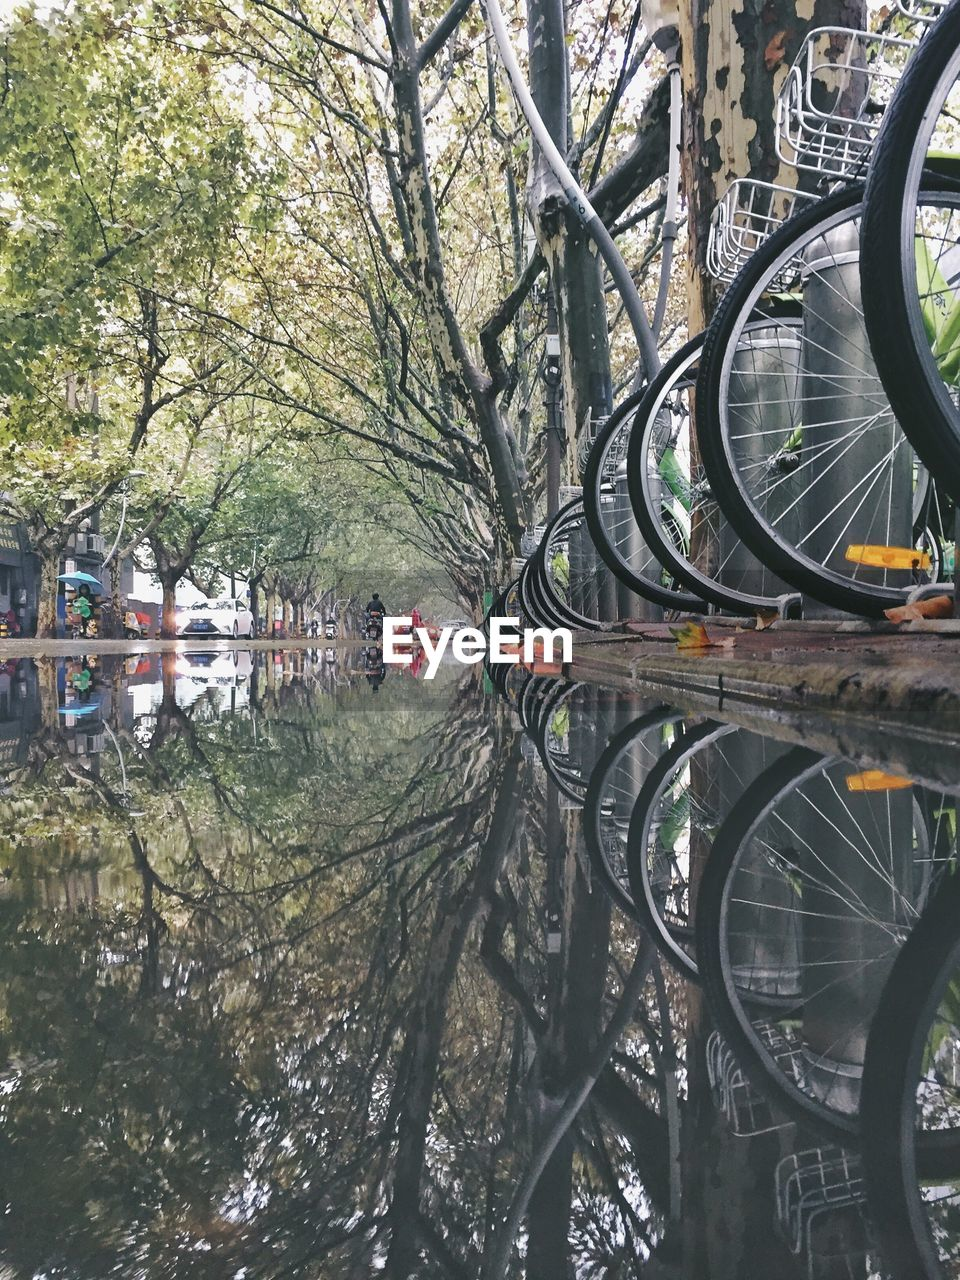 Reflection Of Bare Trees And Bicycle On Water